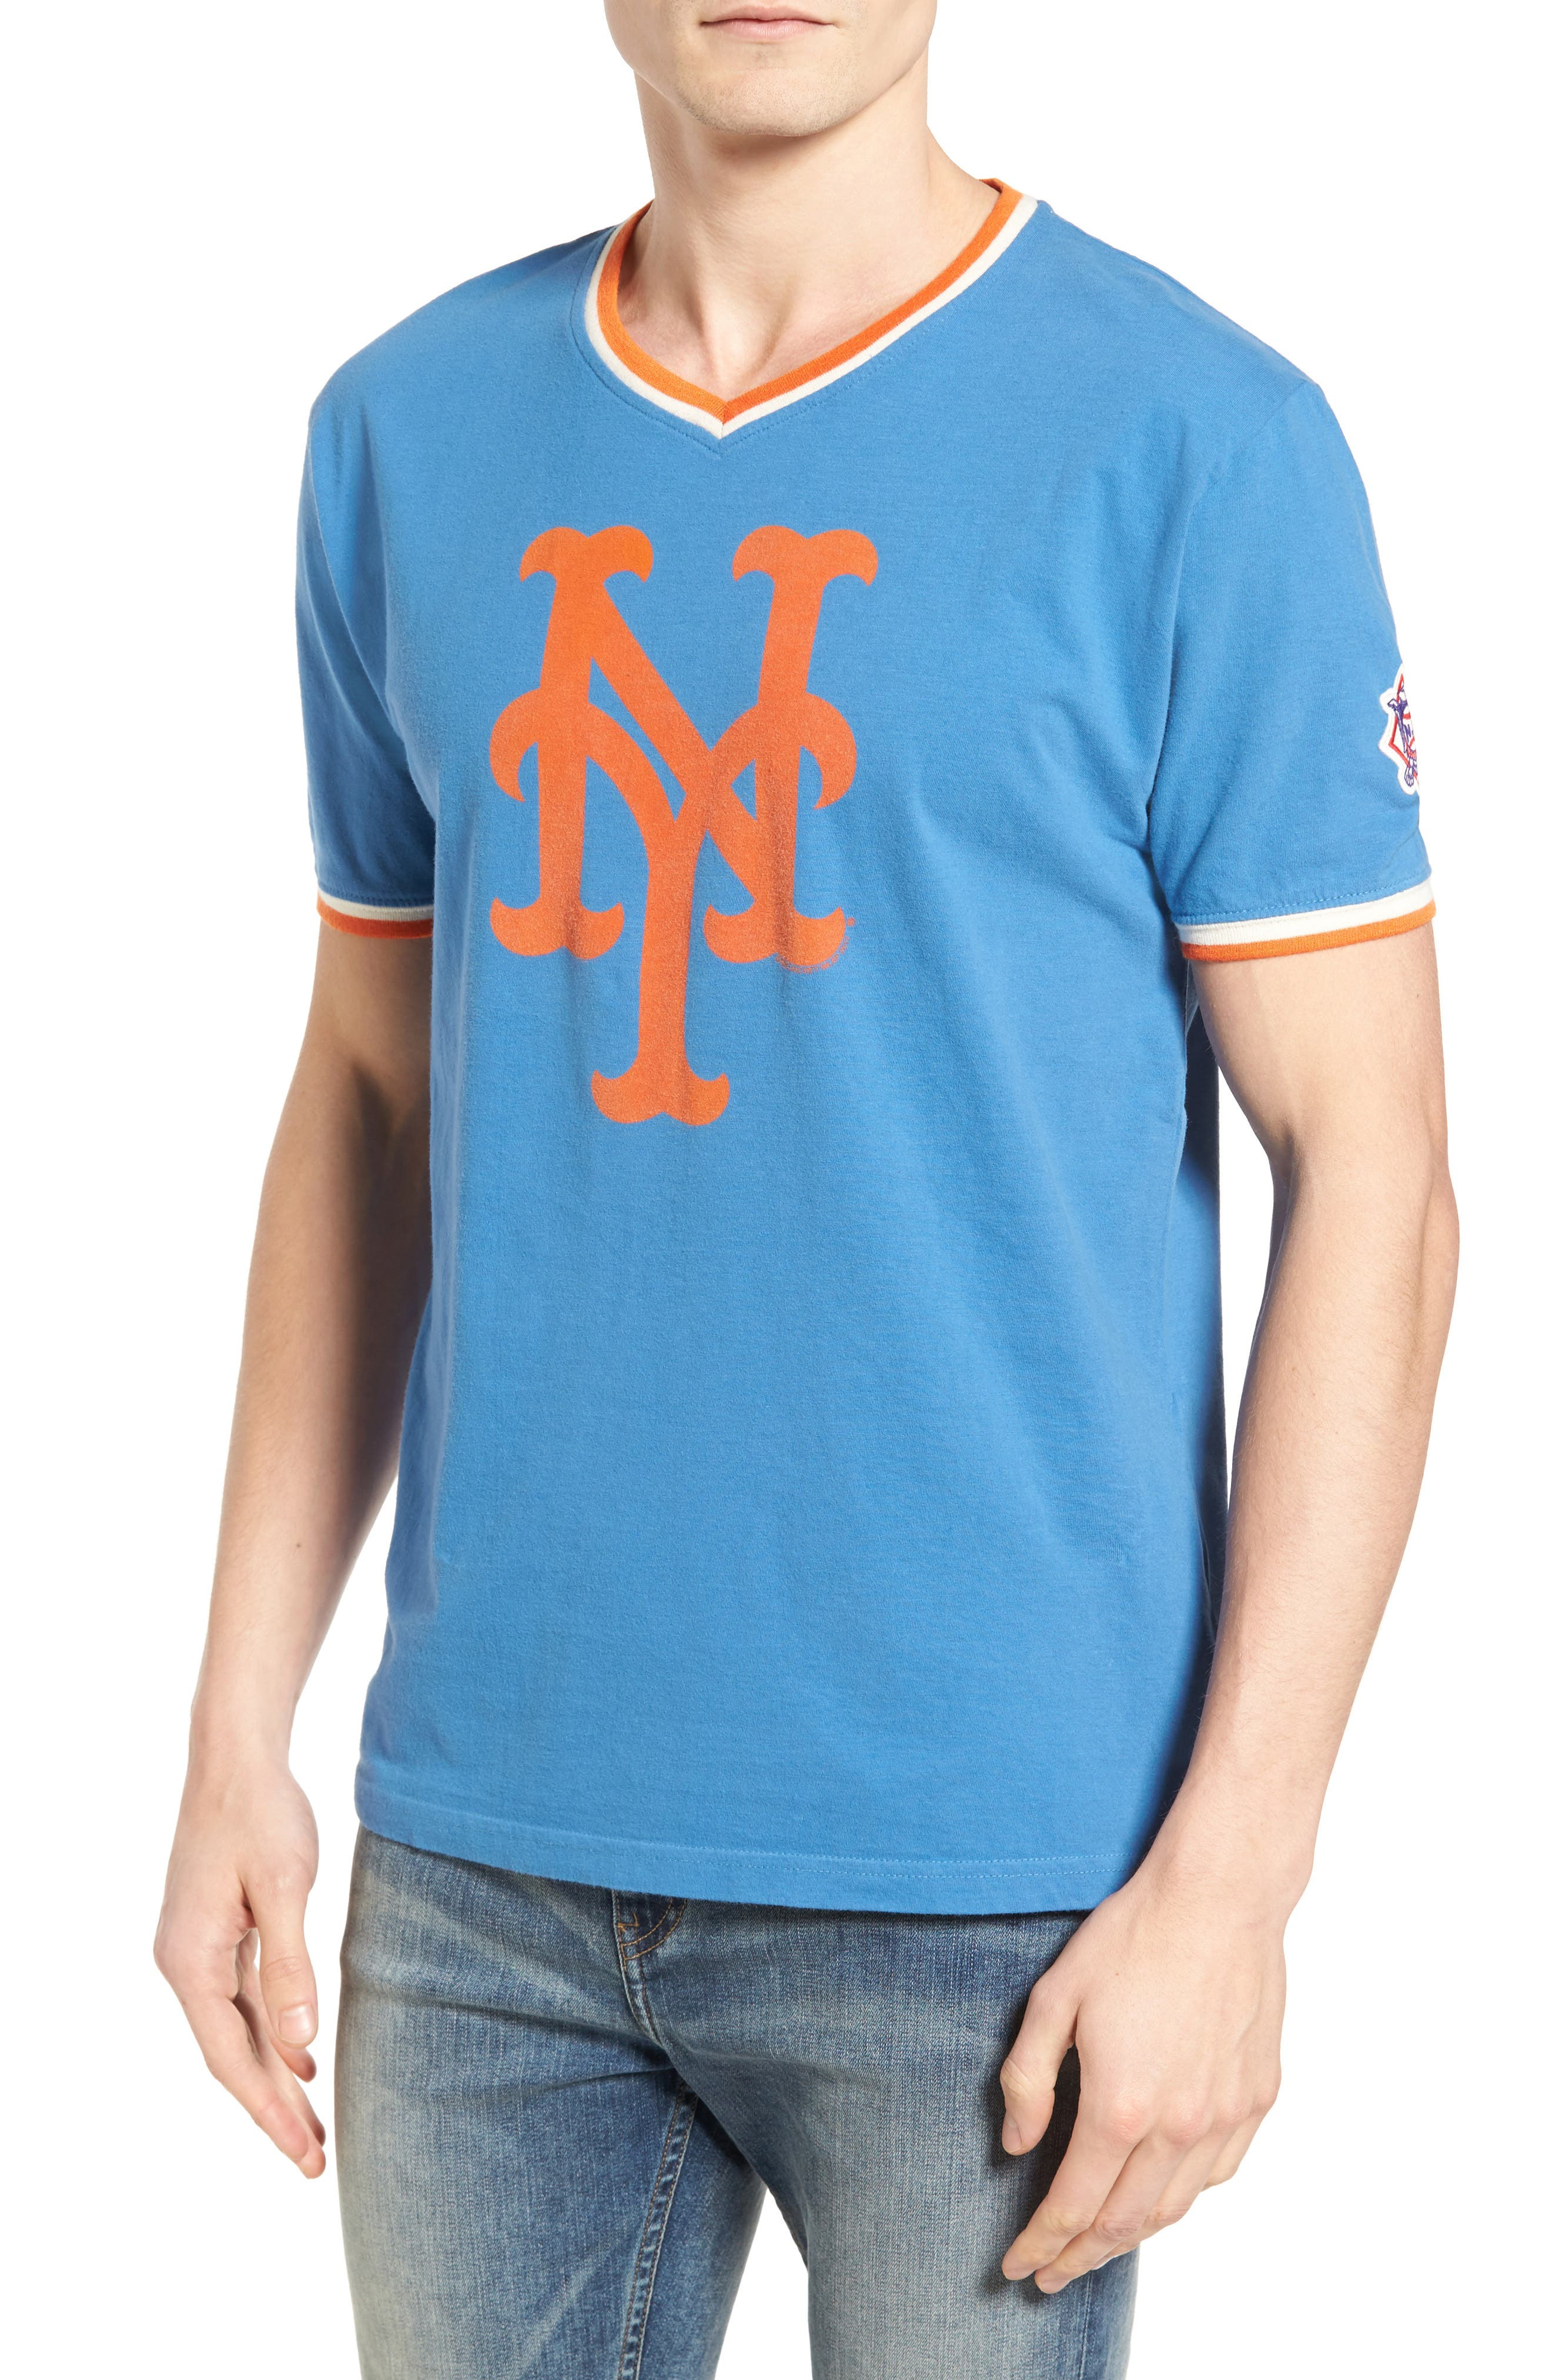 AMERICAN NEEDLE Eastwood New York Mets T-Shirt